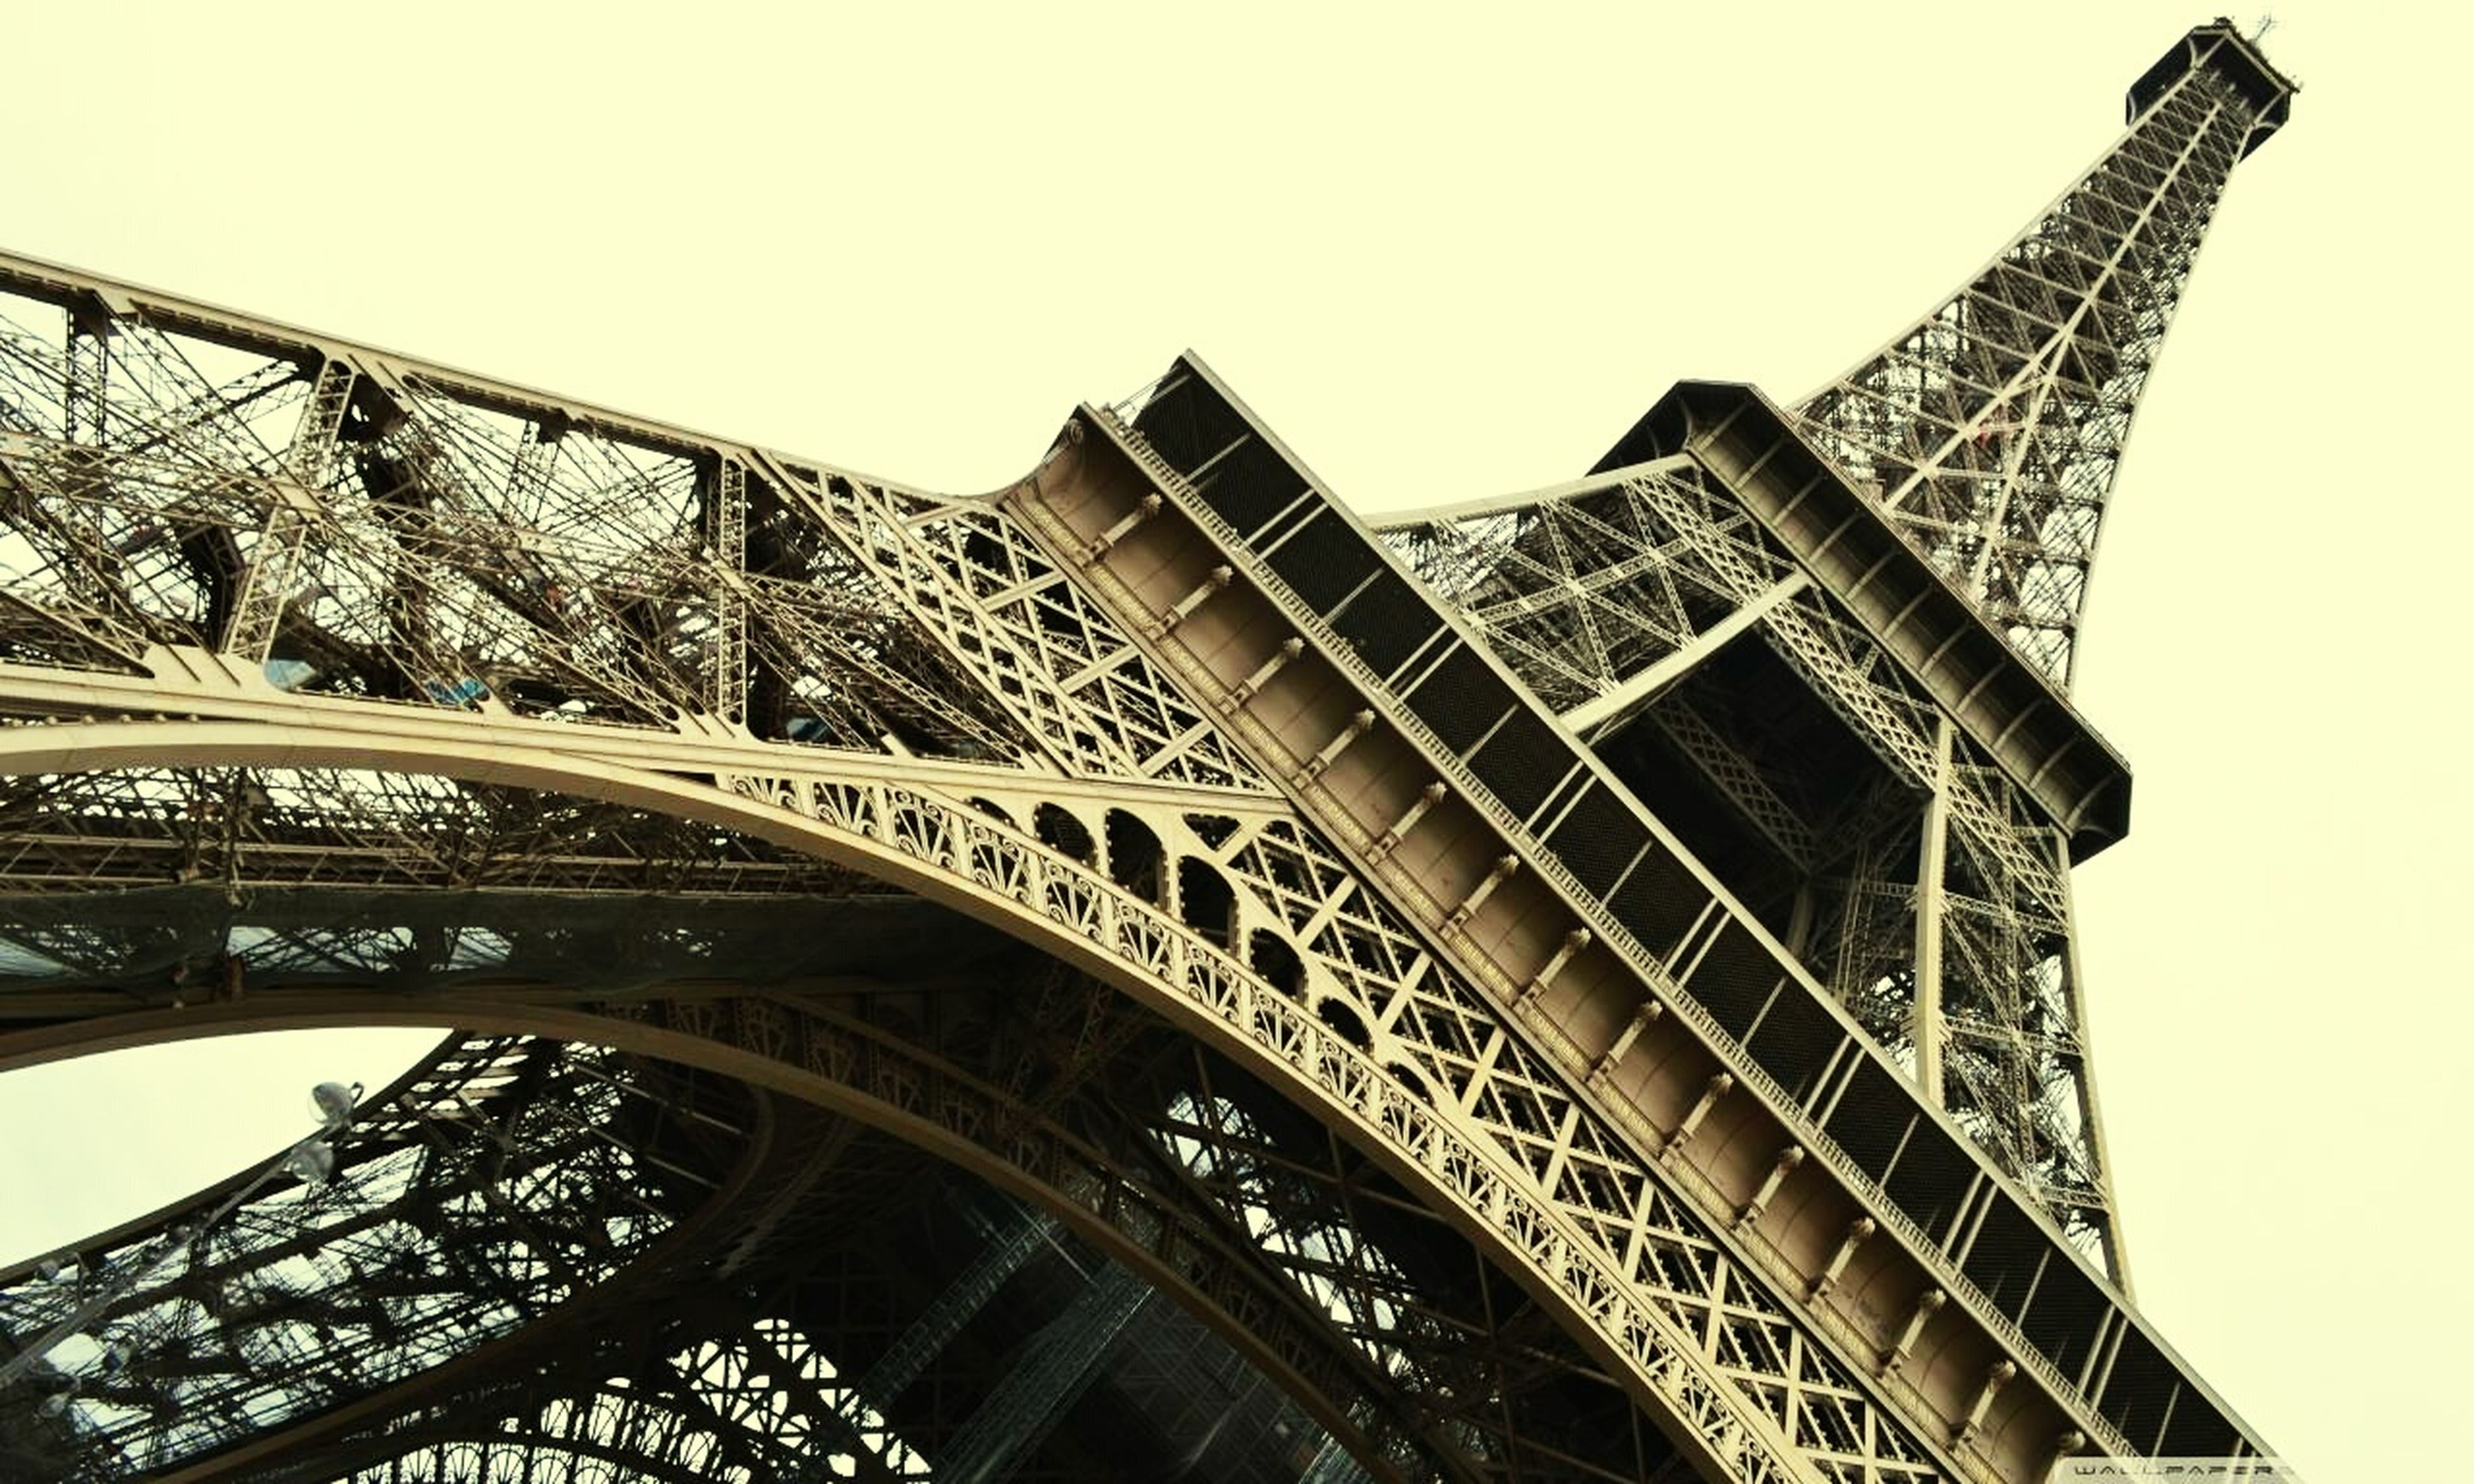 architecture, built structure, low angle view, clear sky, building exterior, tower, famous place, international landmark, eiffel tower, travel destinations, capital cities, tall - high, culture, architectural feature, city, tourism, travel, history, day, metal